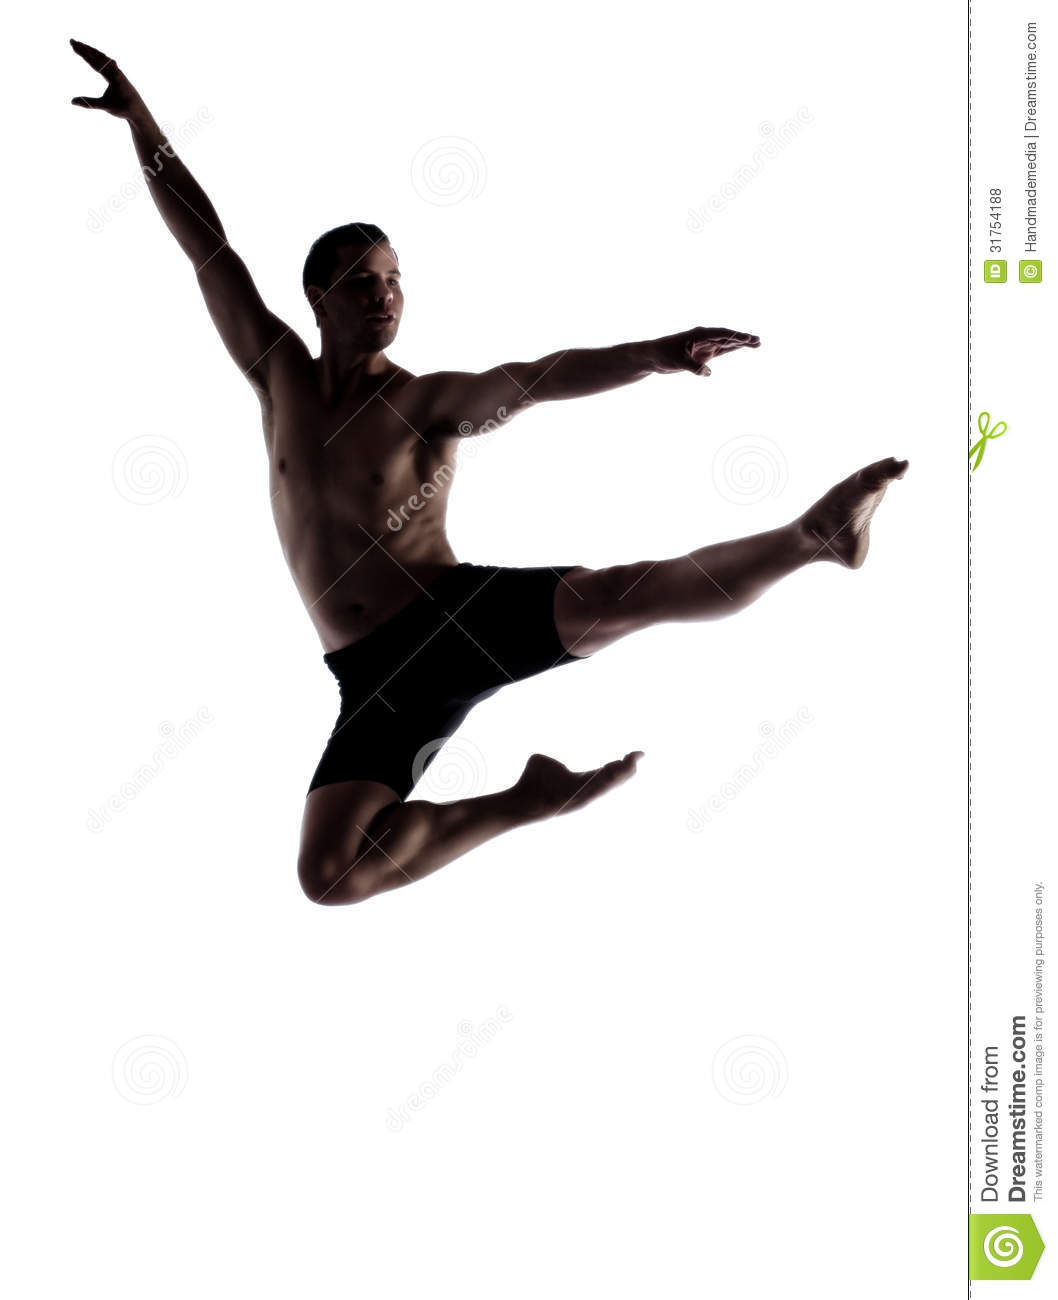 Adult Male Dancer Royalty Free Stock Photos - Image: 31754188